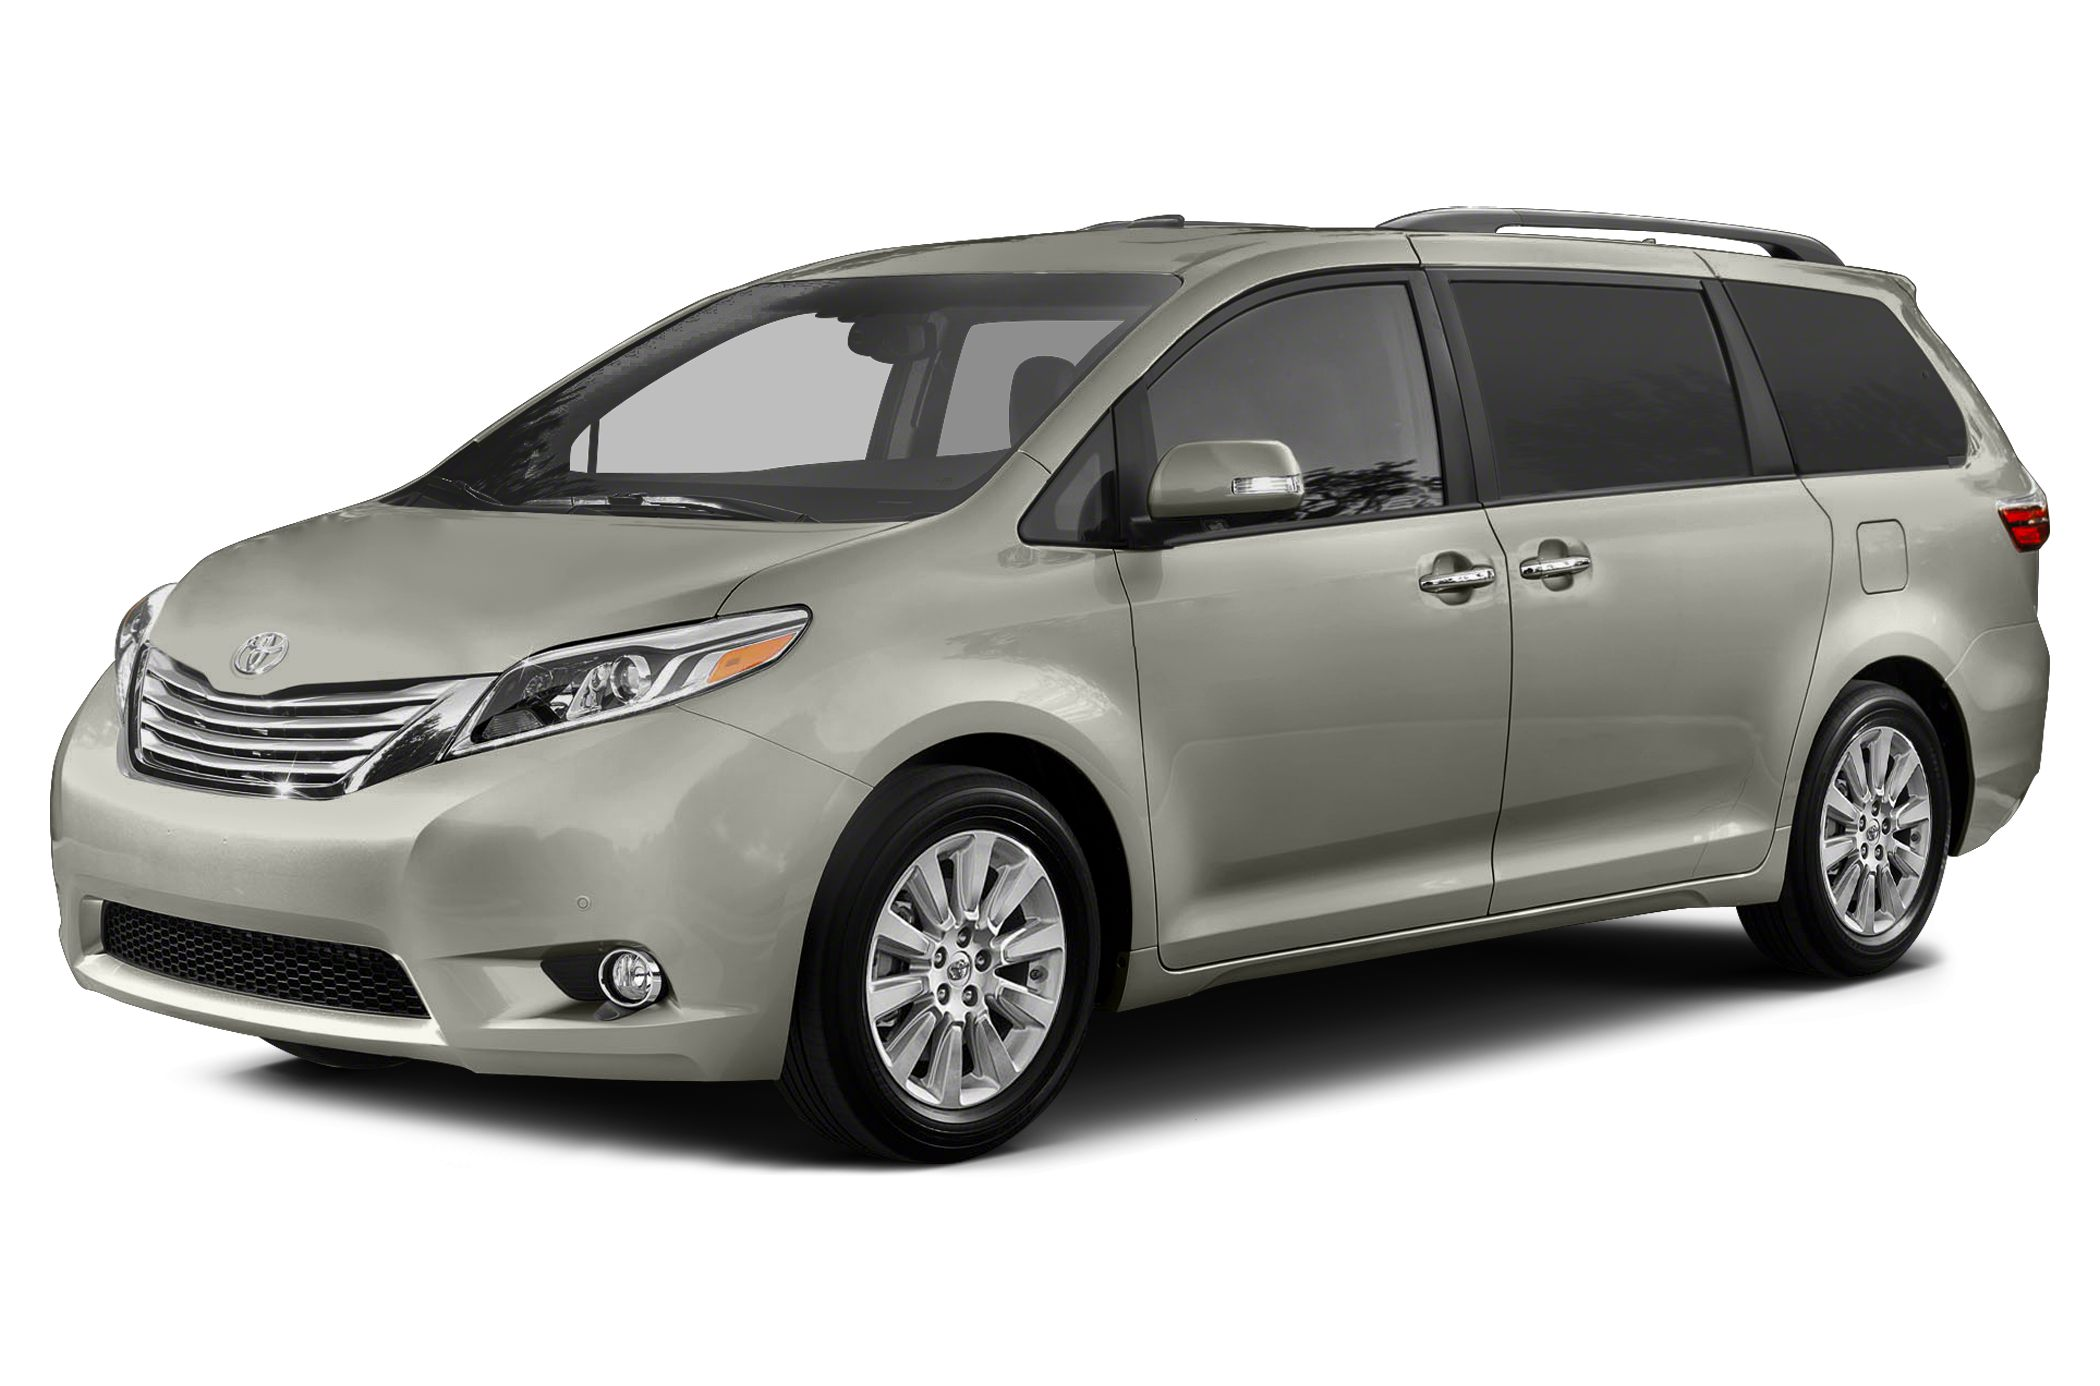 2015 Toyota Sienna XLE Minivan for sale in Laconia for $35,674 with 5 miles